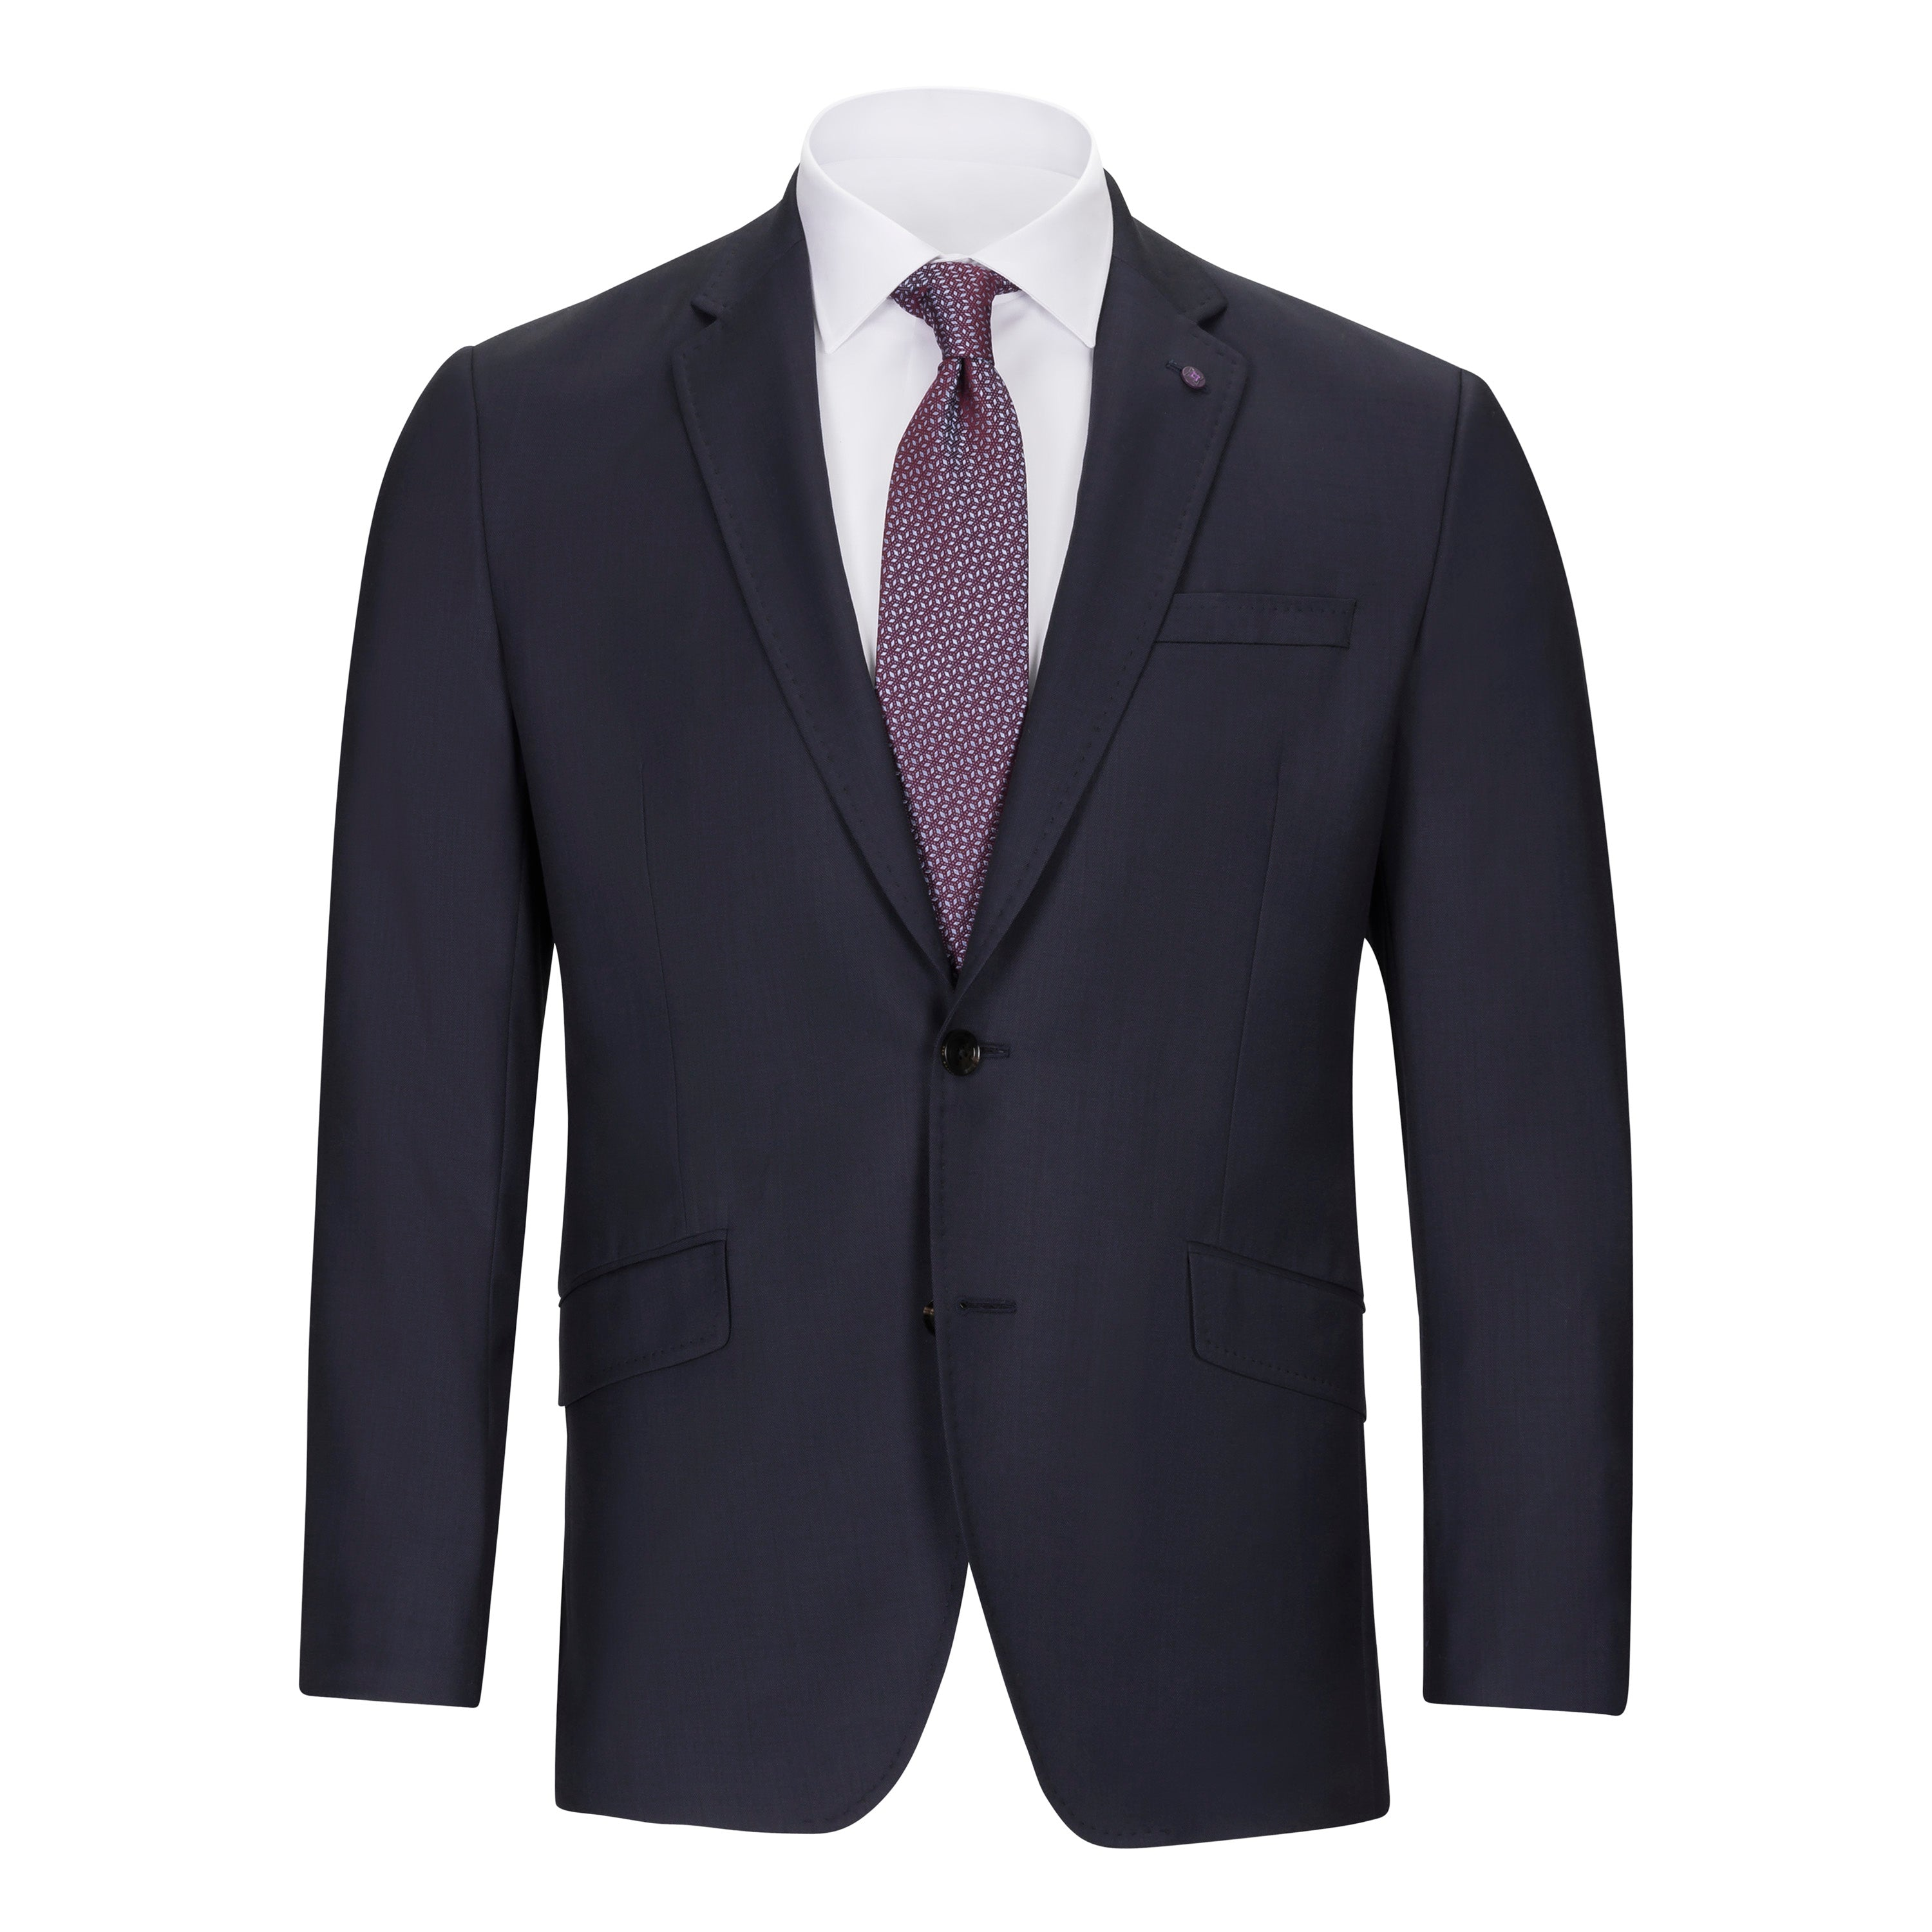 4bc1a7a6734dc4 TED BAKER BLUE SHARKSKIN SUIT – Miltons - The Store for Men